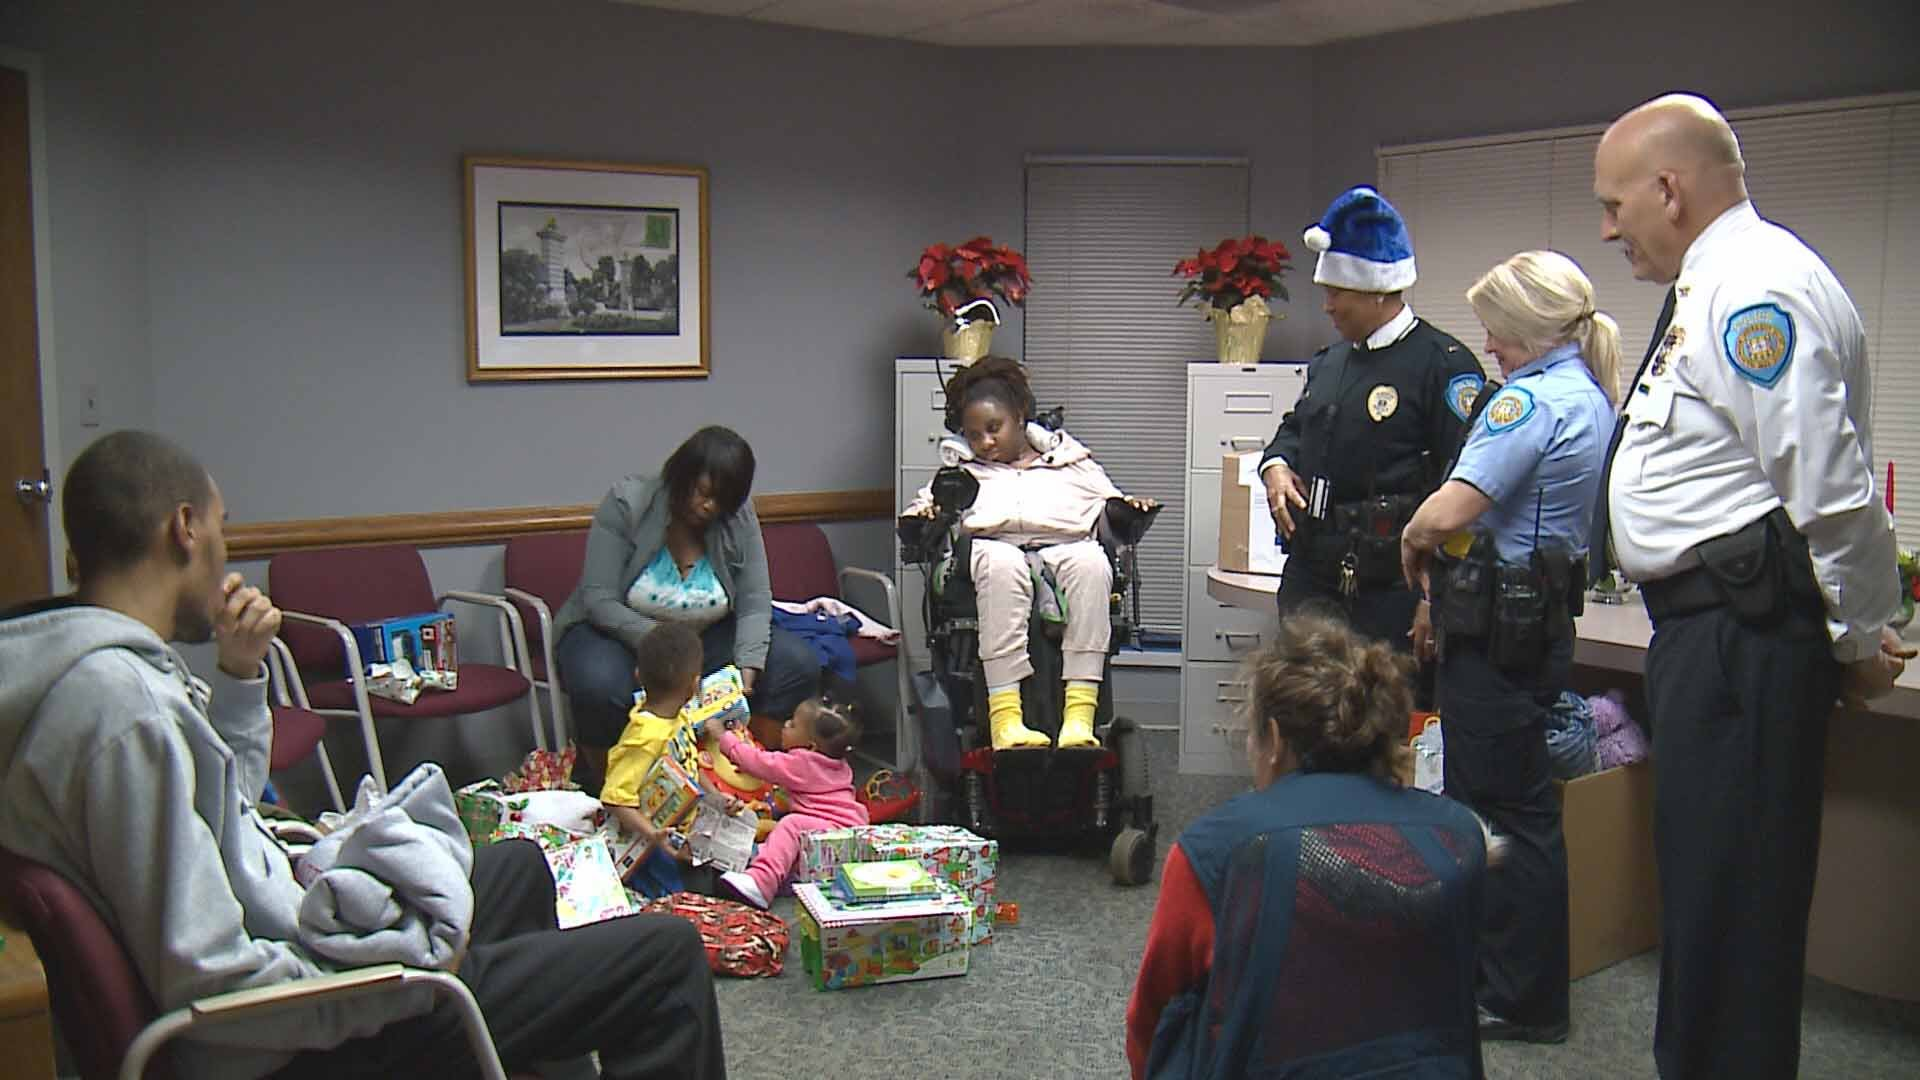 Blue Santa, a friend of the Washington University Police Department, delivered loads of toys, boxes of food and plenty of gift cards to Collier and her two children. Credit: KMOV